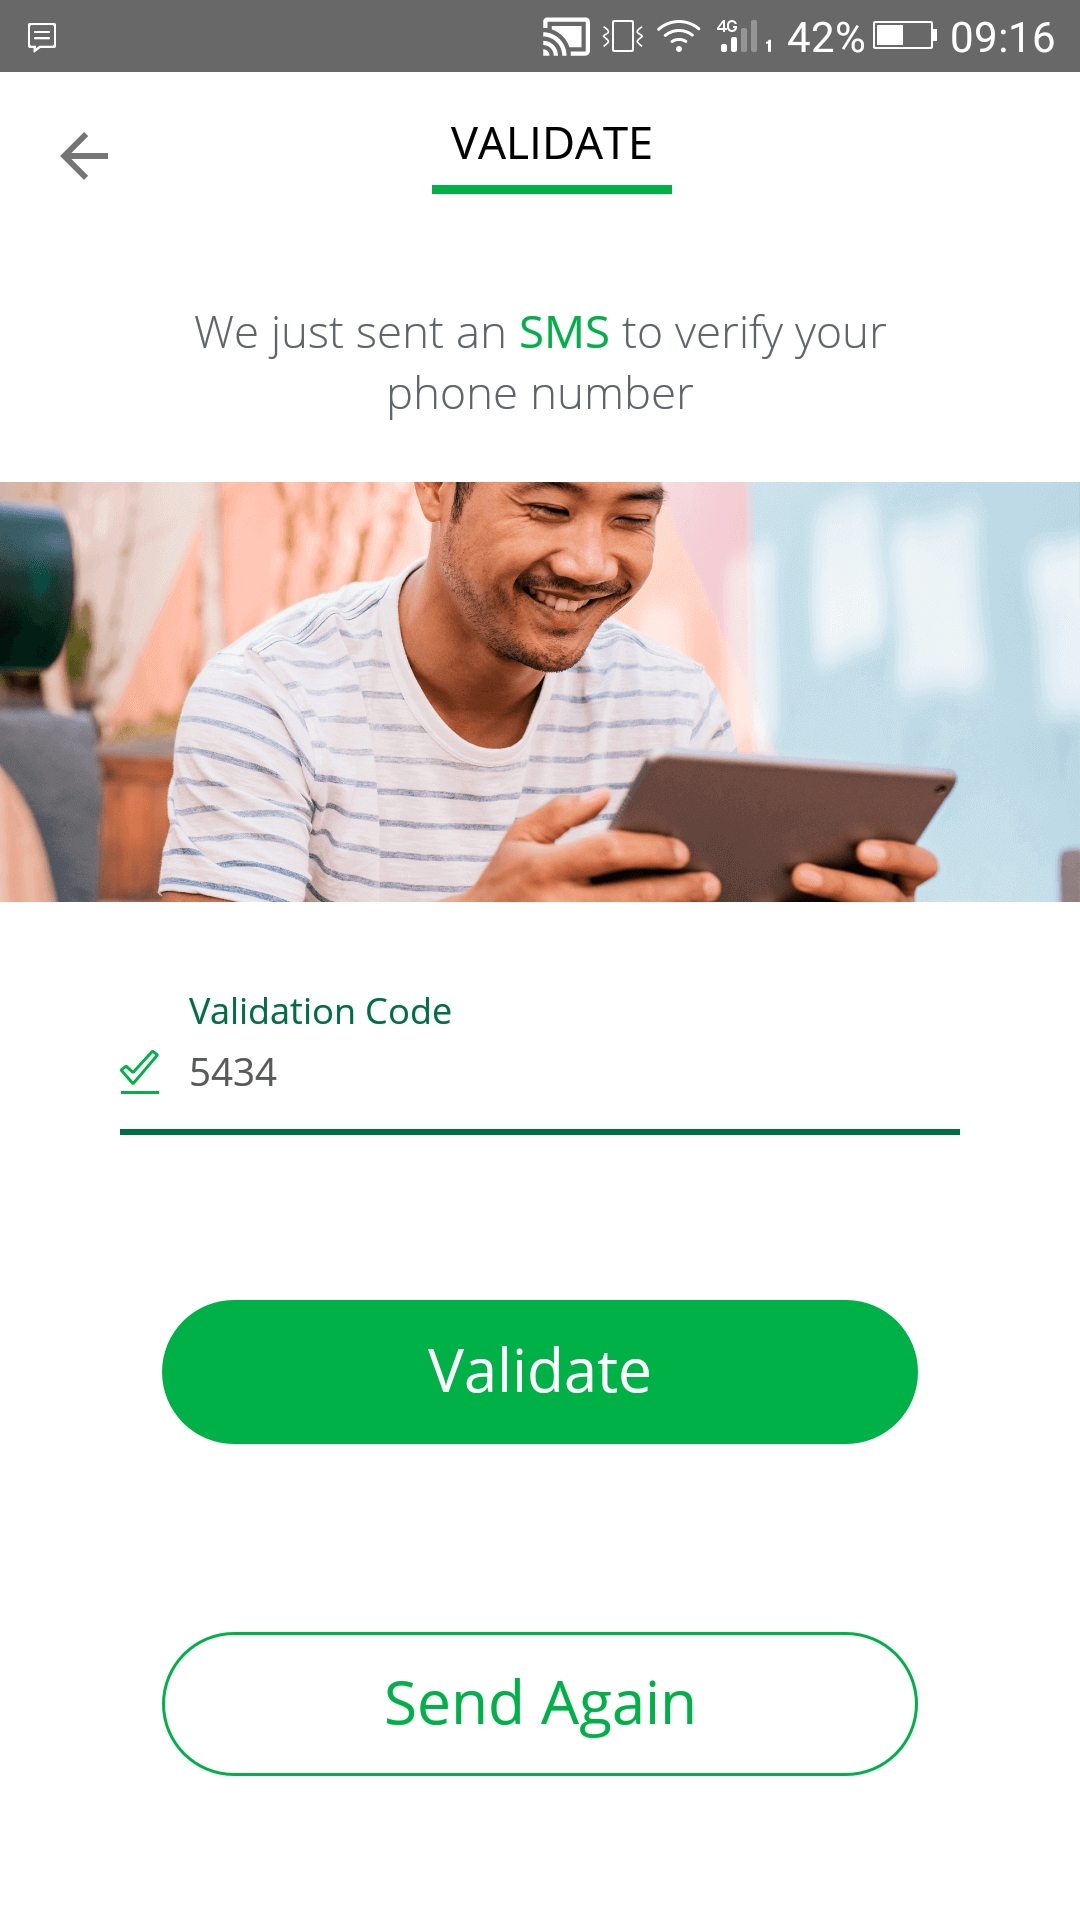 validation-code.jpg